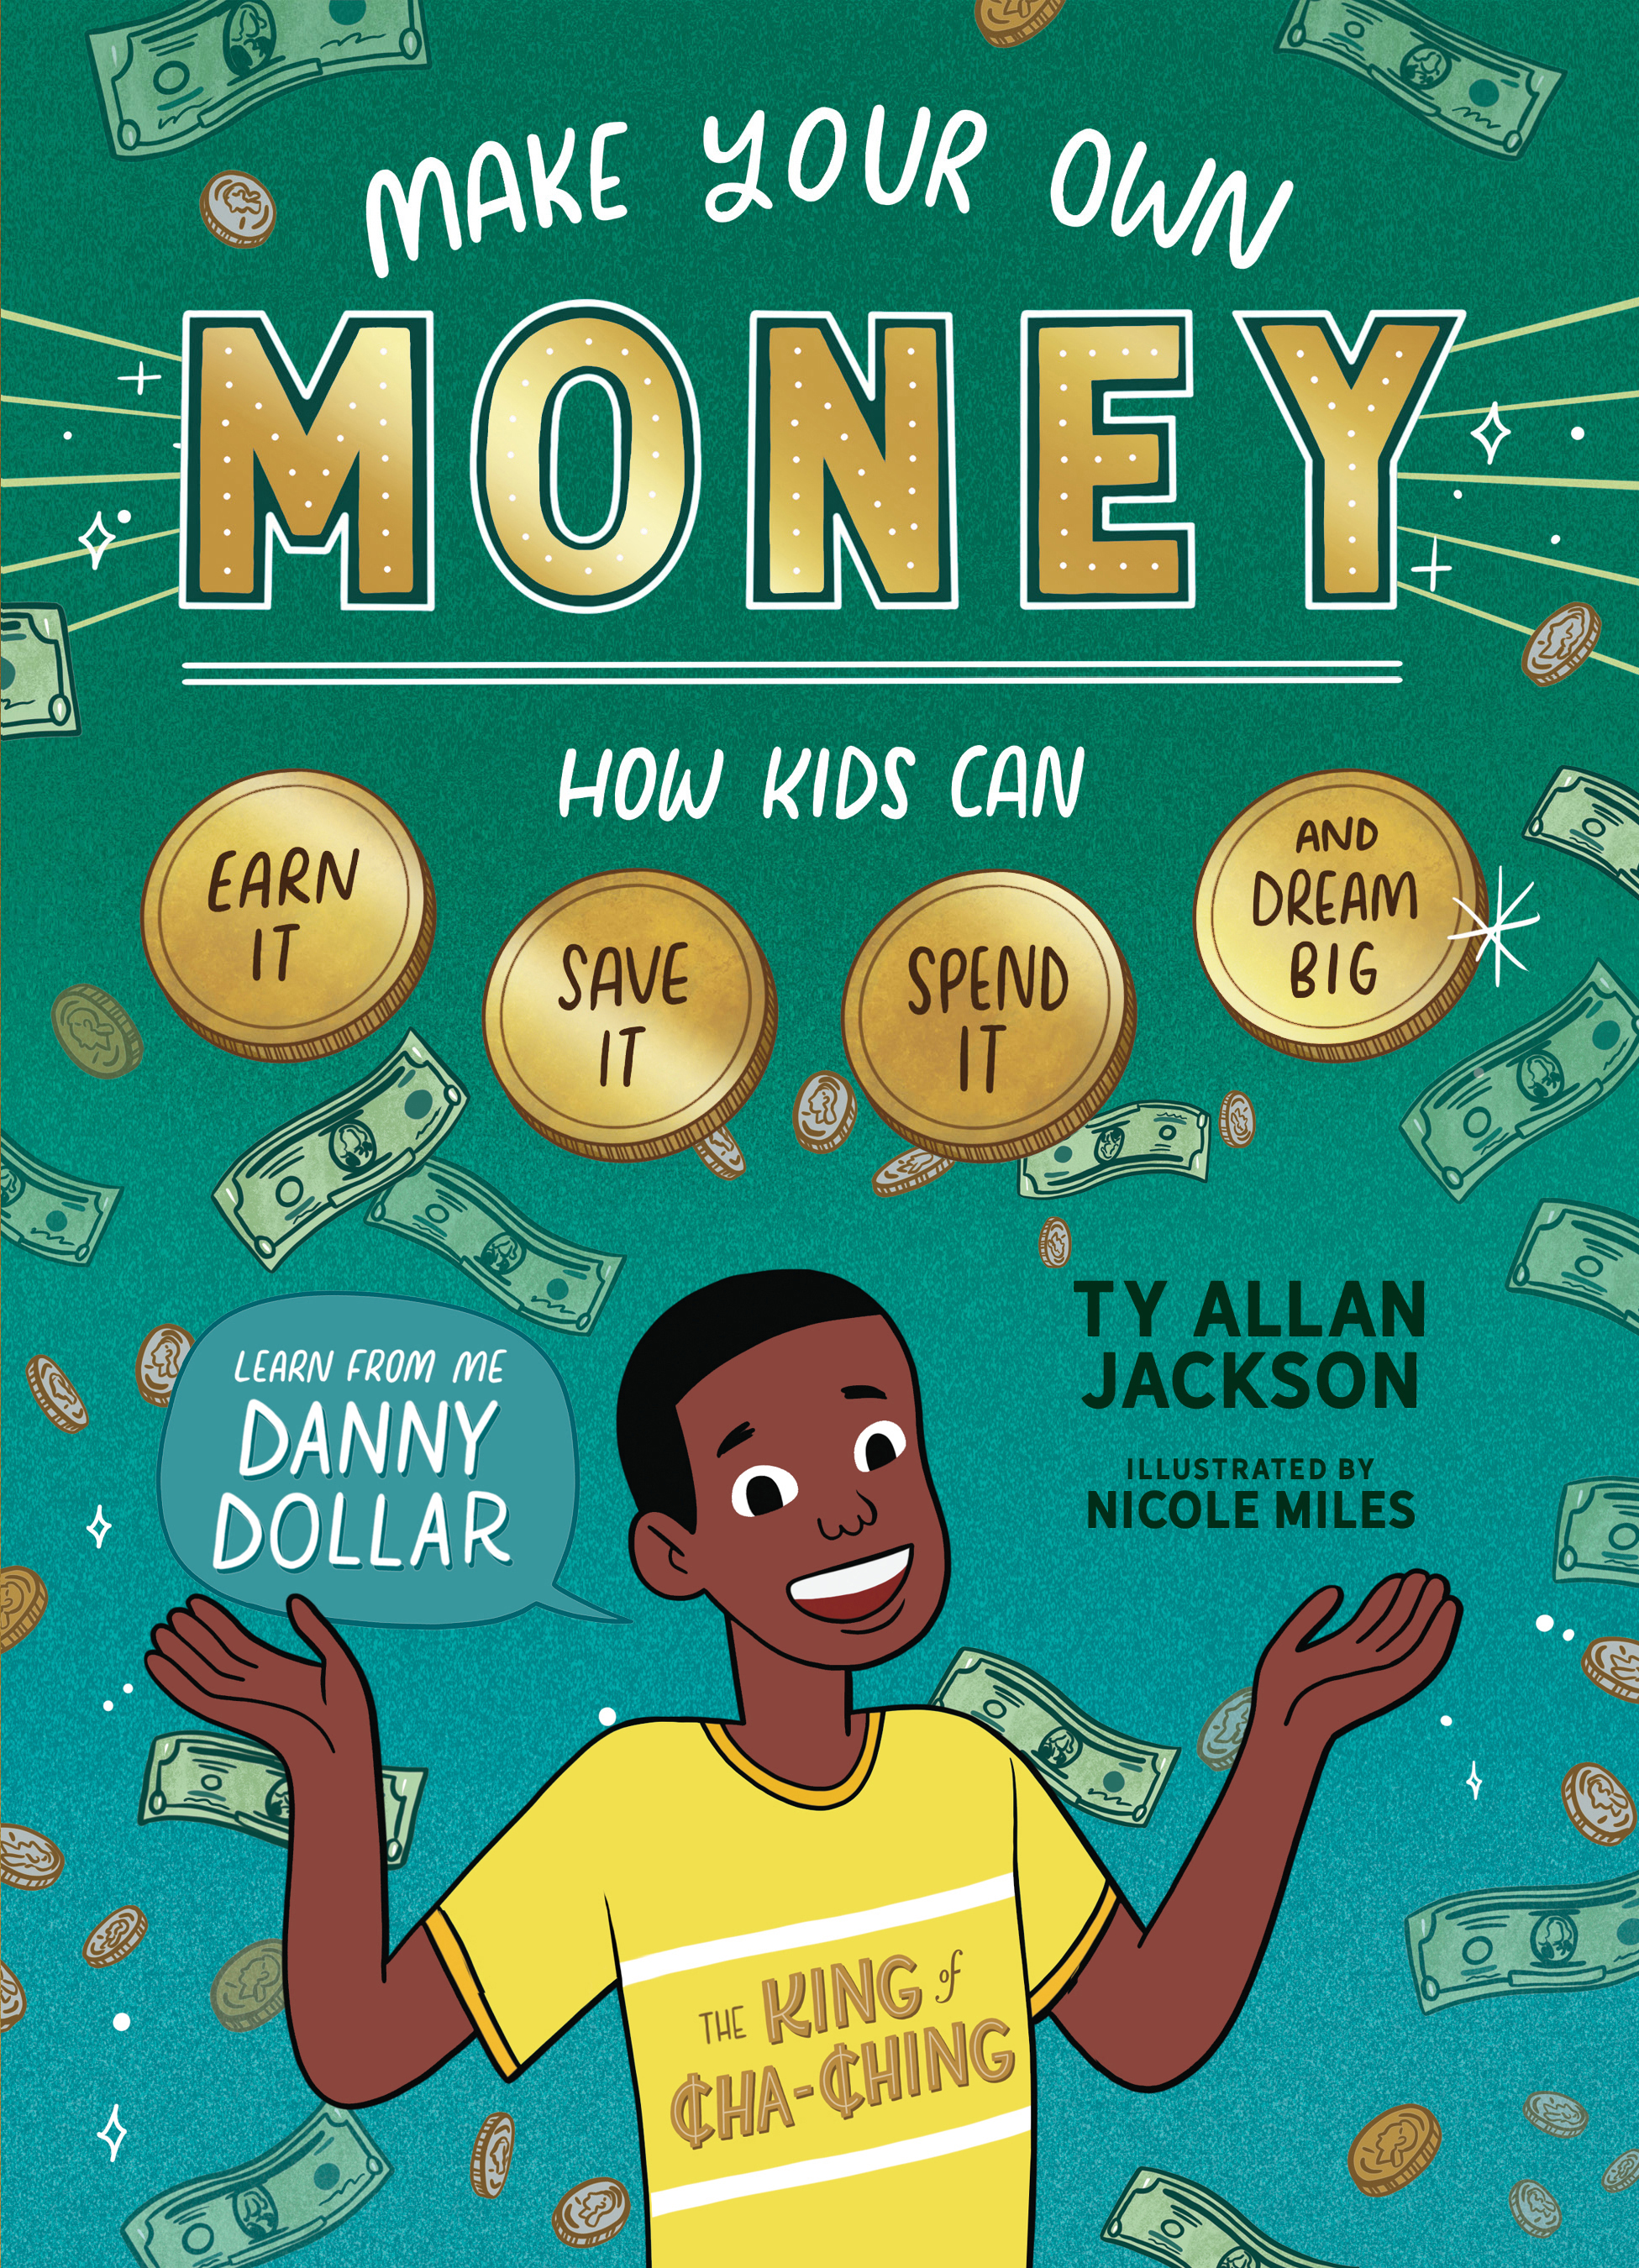 Make Your Own Money How Kids Can Earn It, Save It, Spend It, and Dream Big, with Danny Dollar, the King of Cha-Ching - Ty Allan Jackson